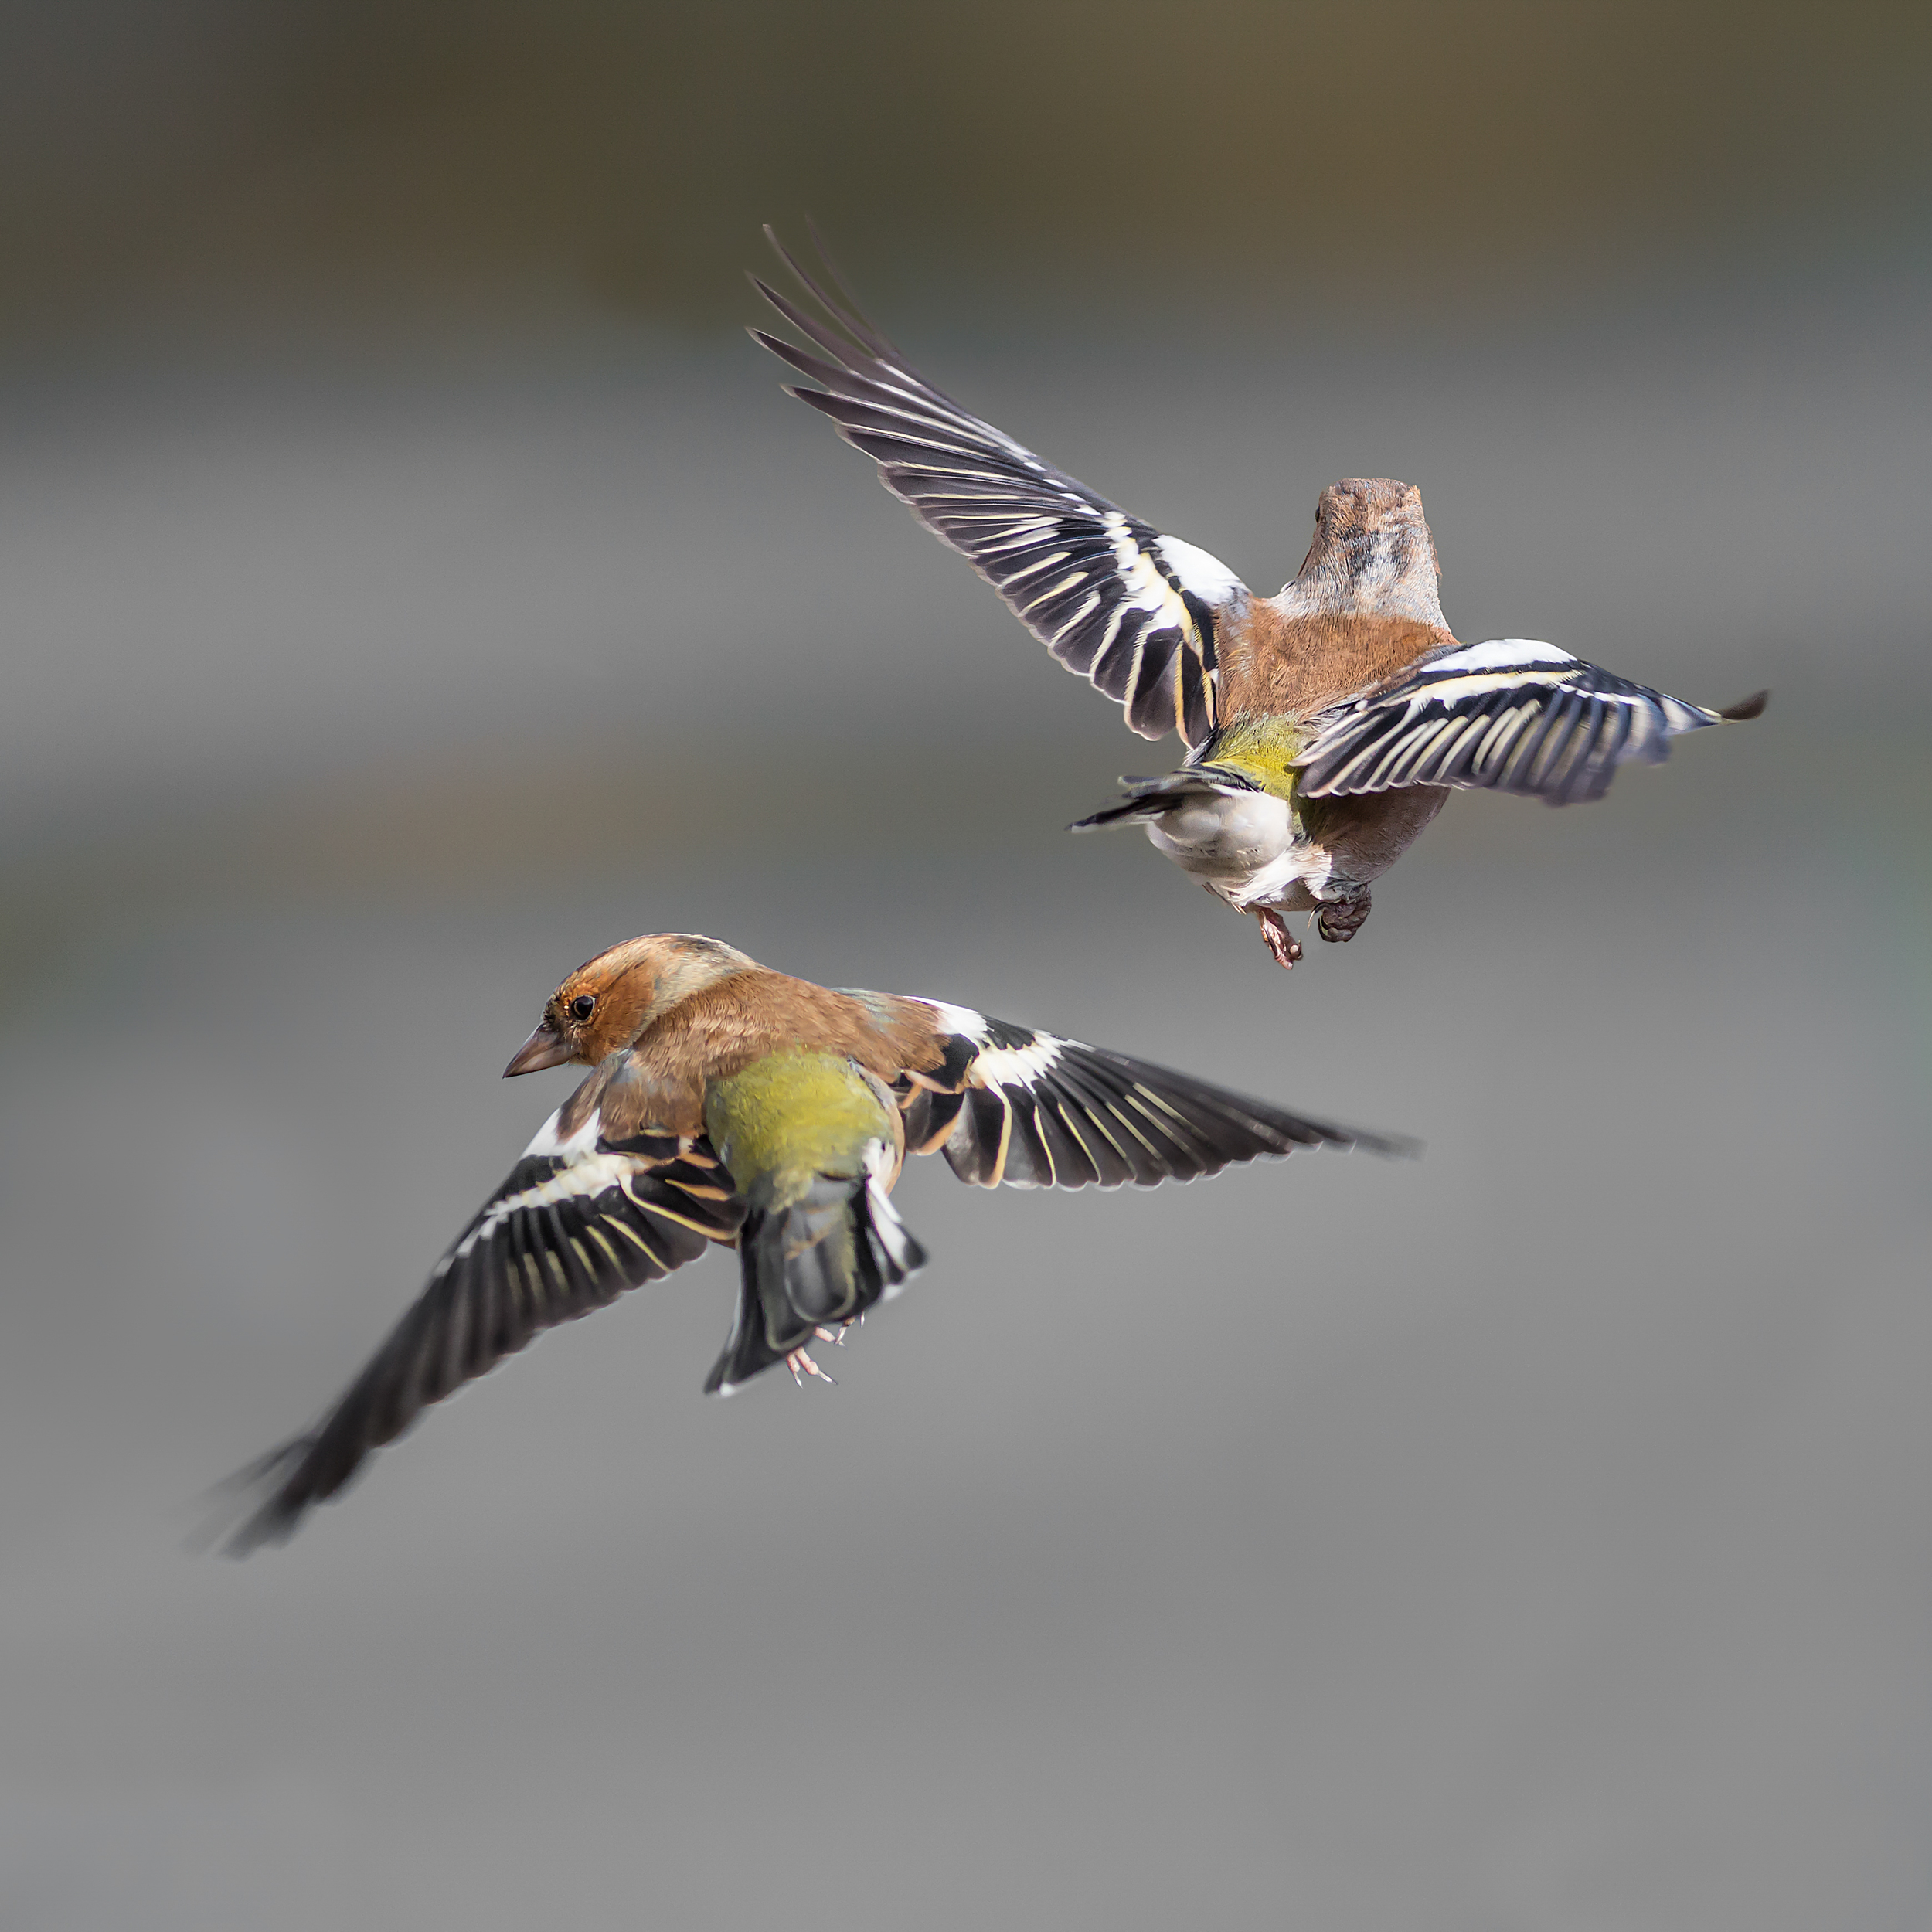 Two male Chaffinches